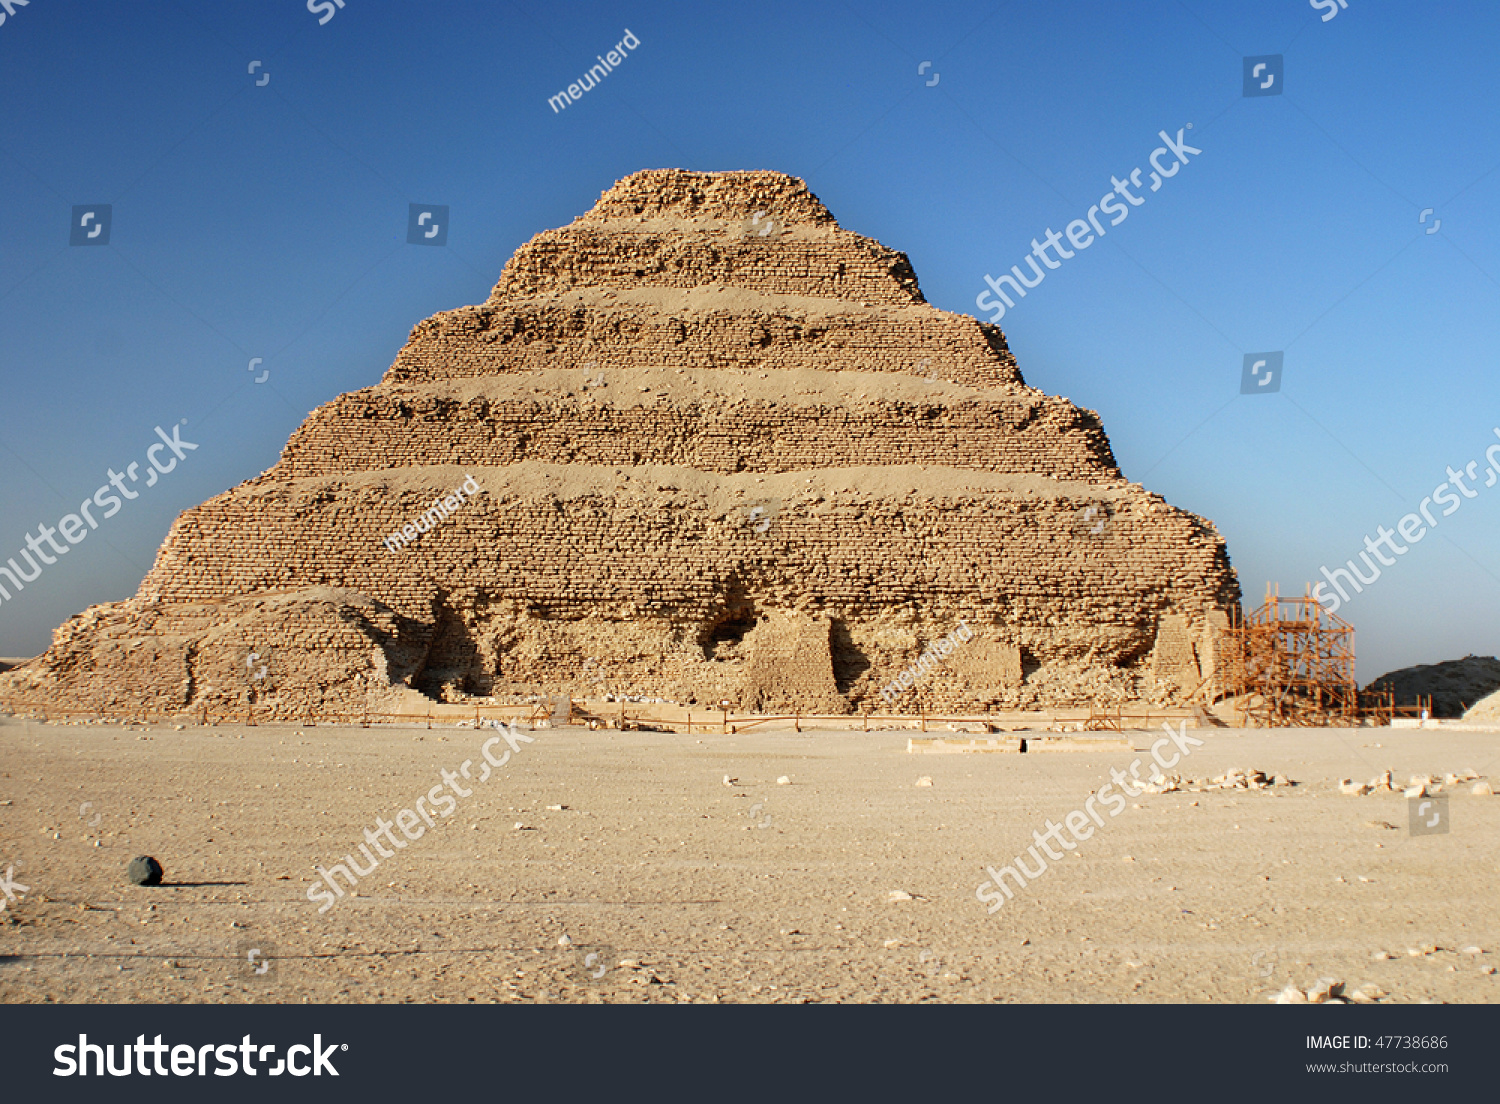 number of pyramids in egypt